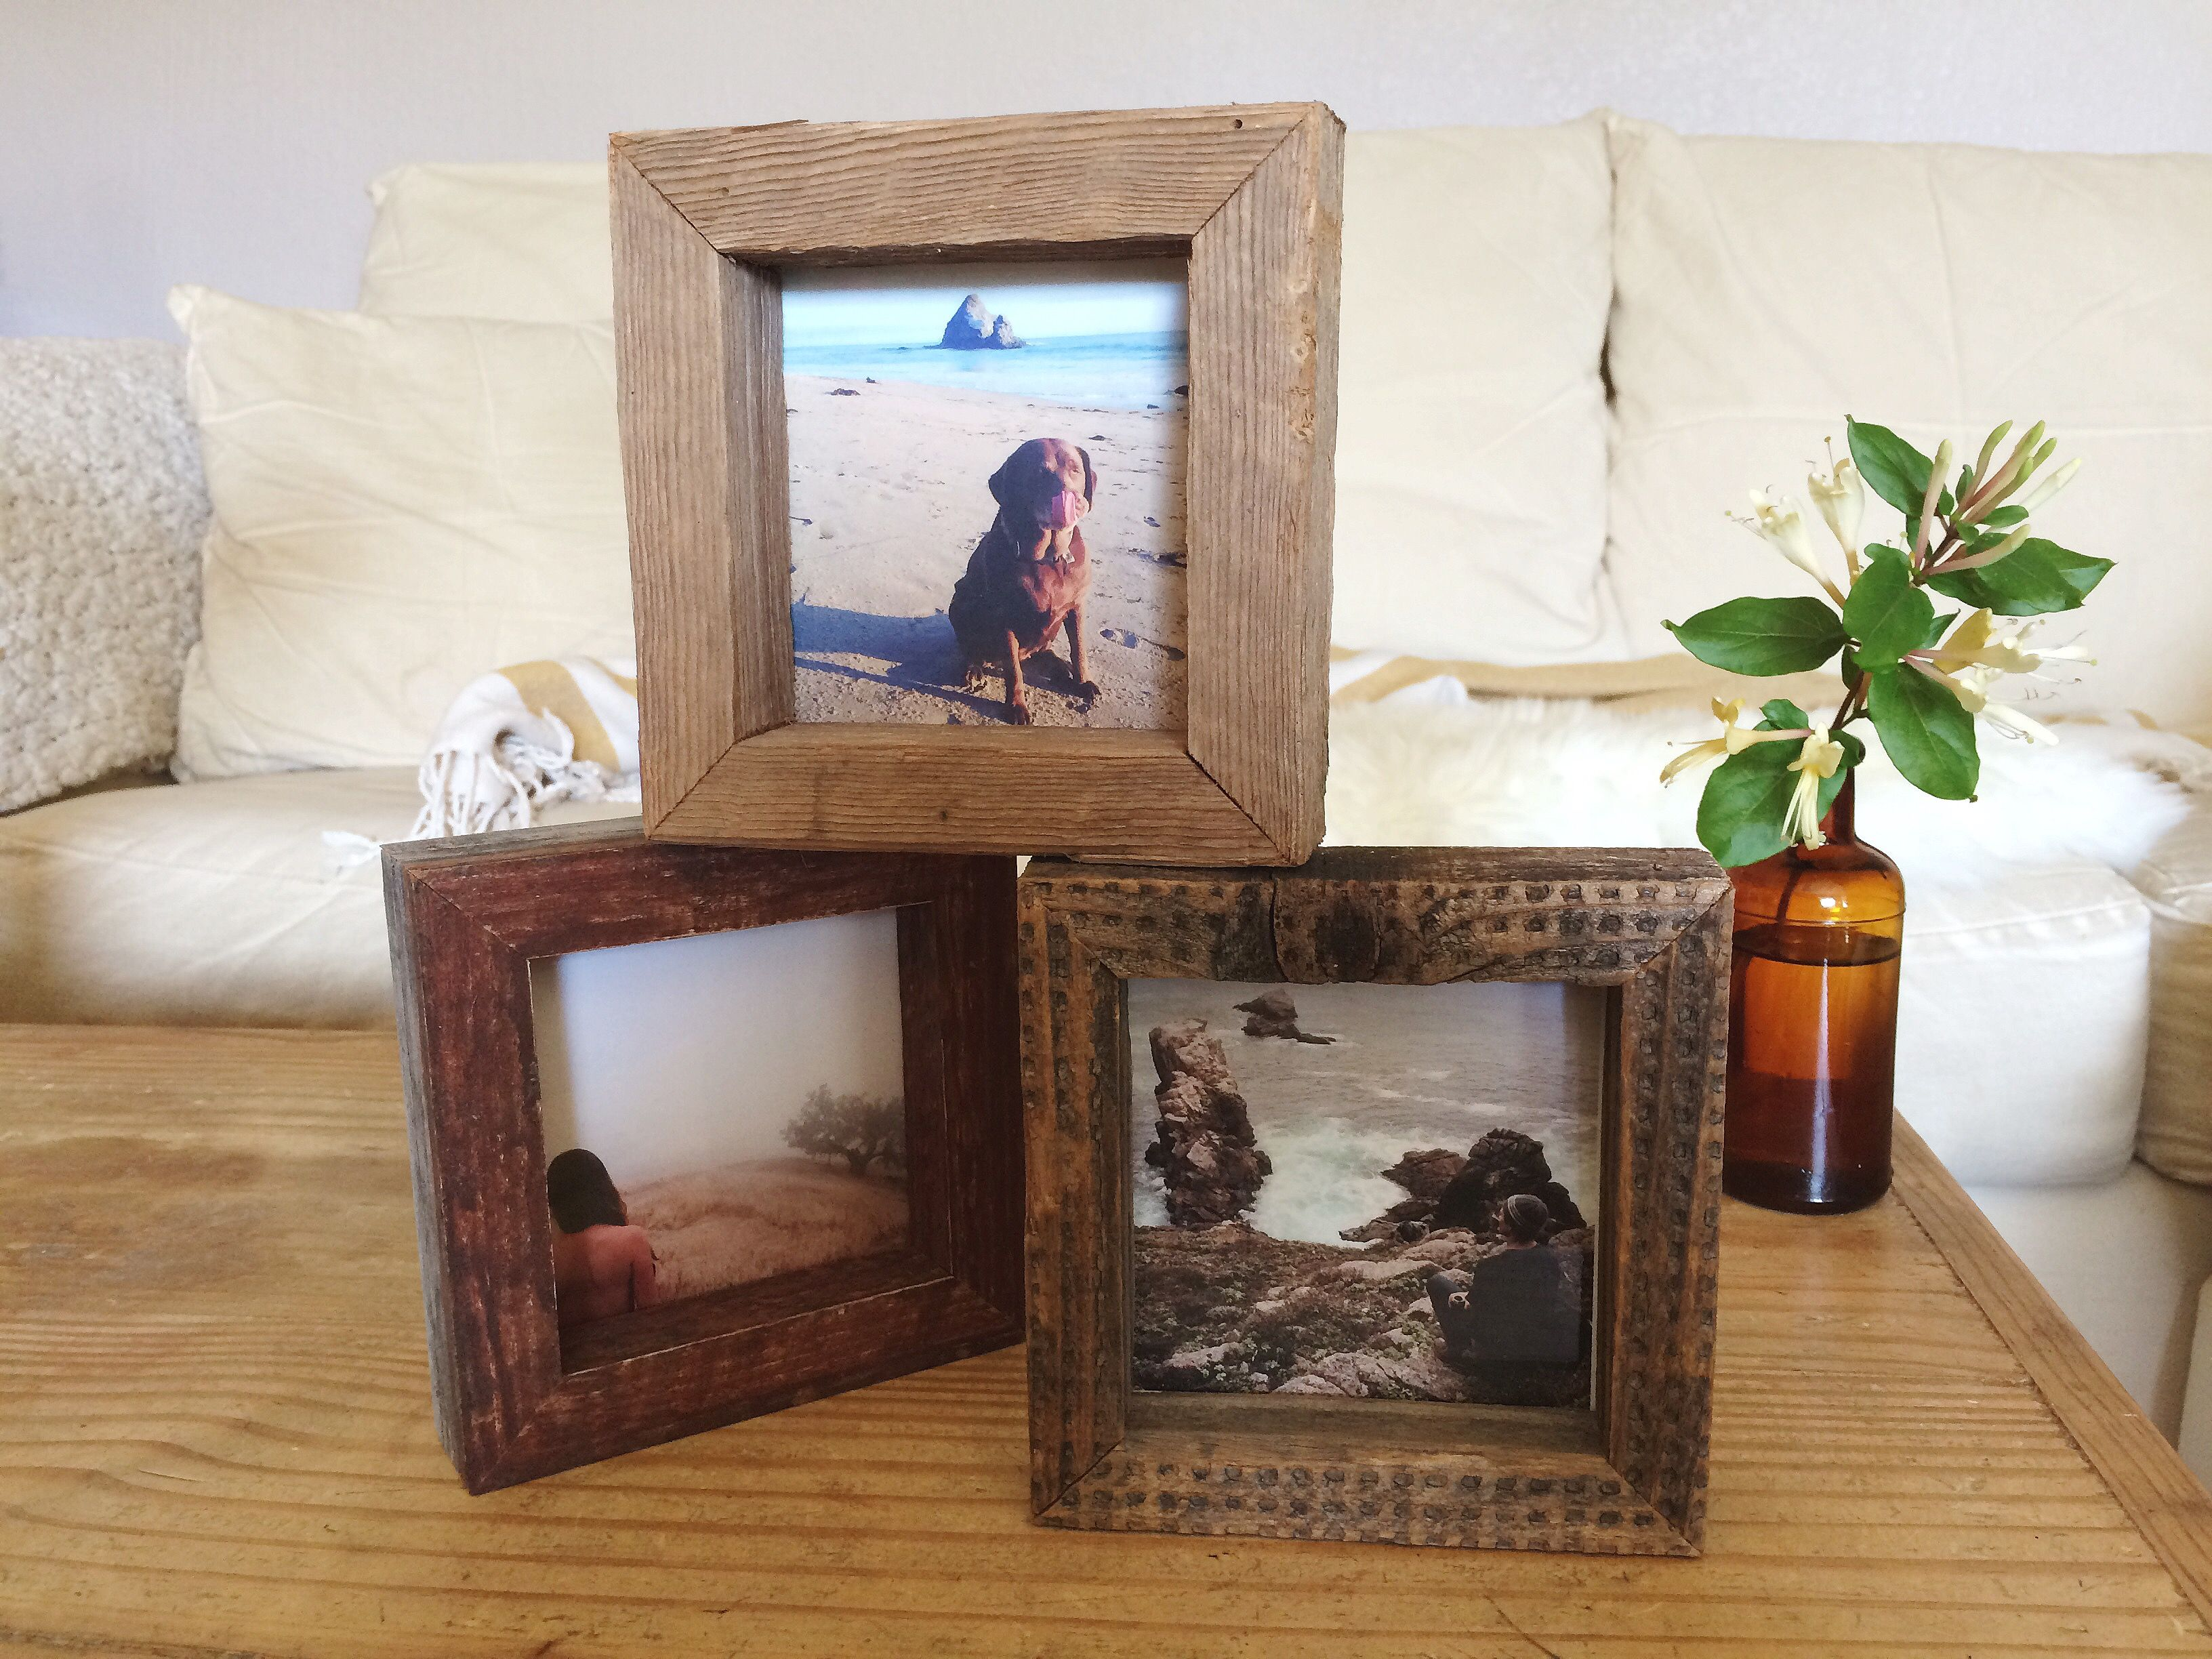 Reclaimed Wood Simple 4x4 Picture Frame Hand Made In Santa Cruz